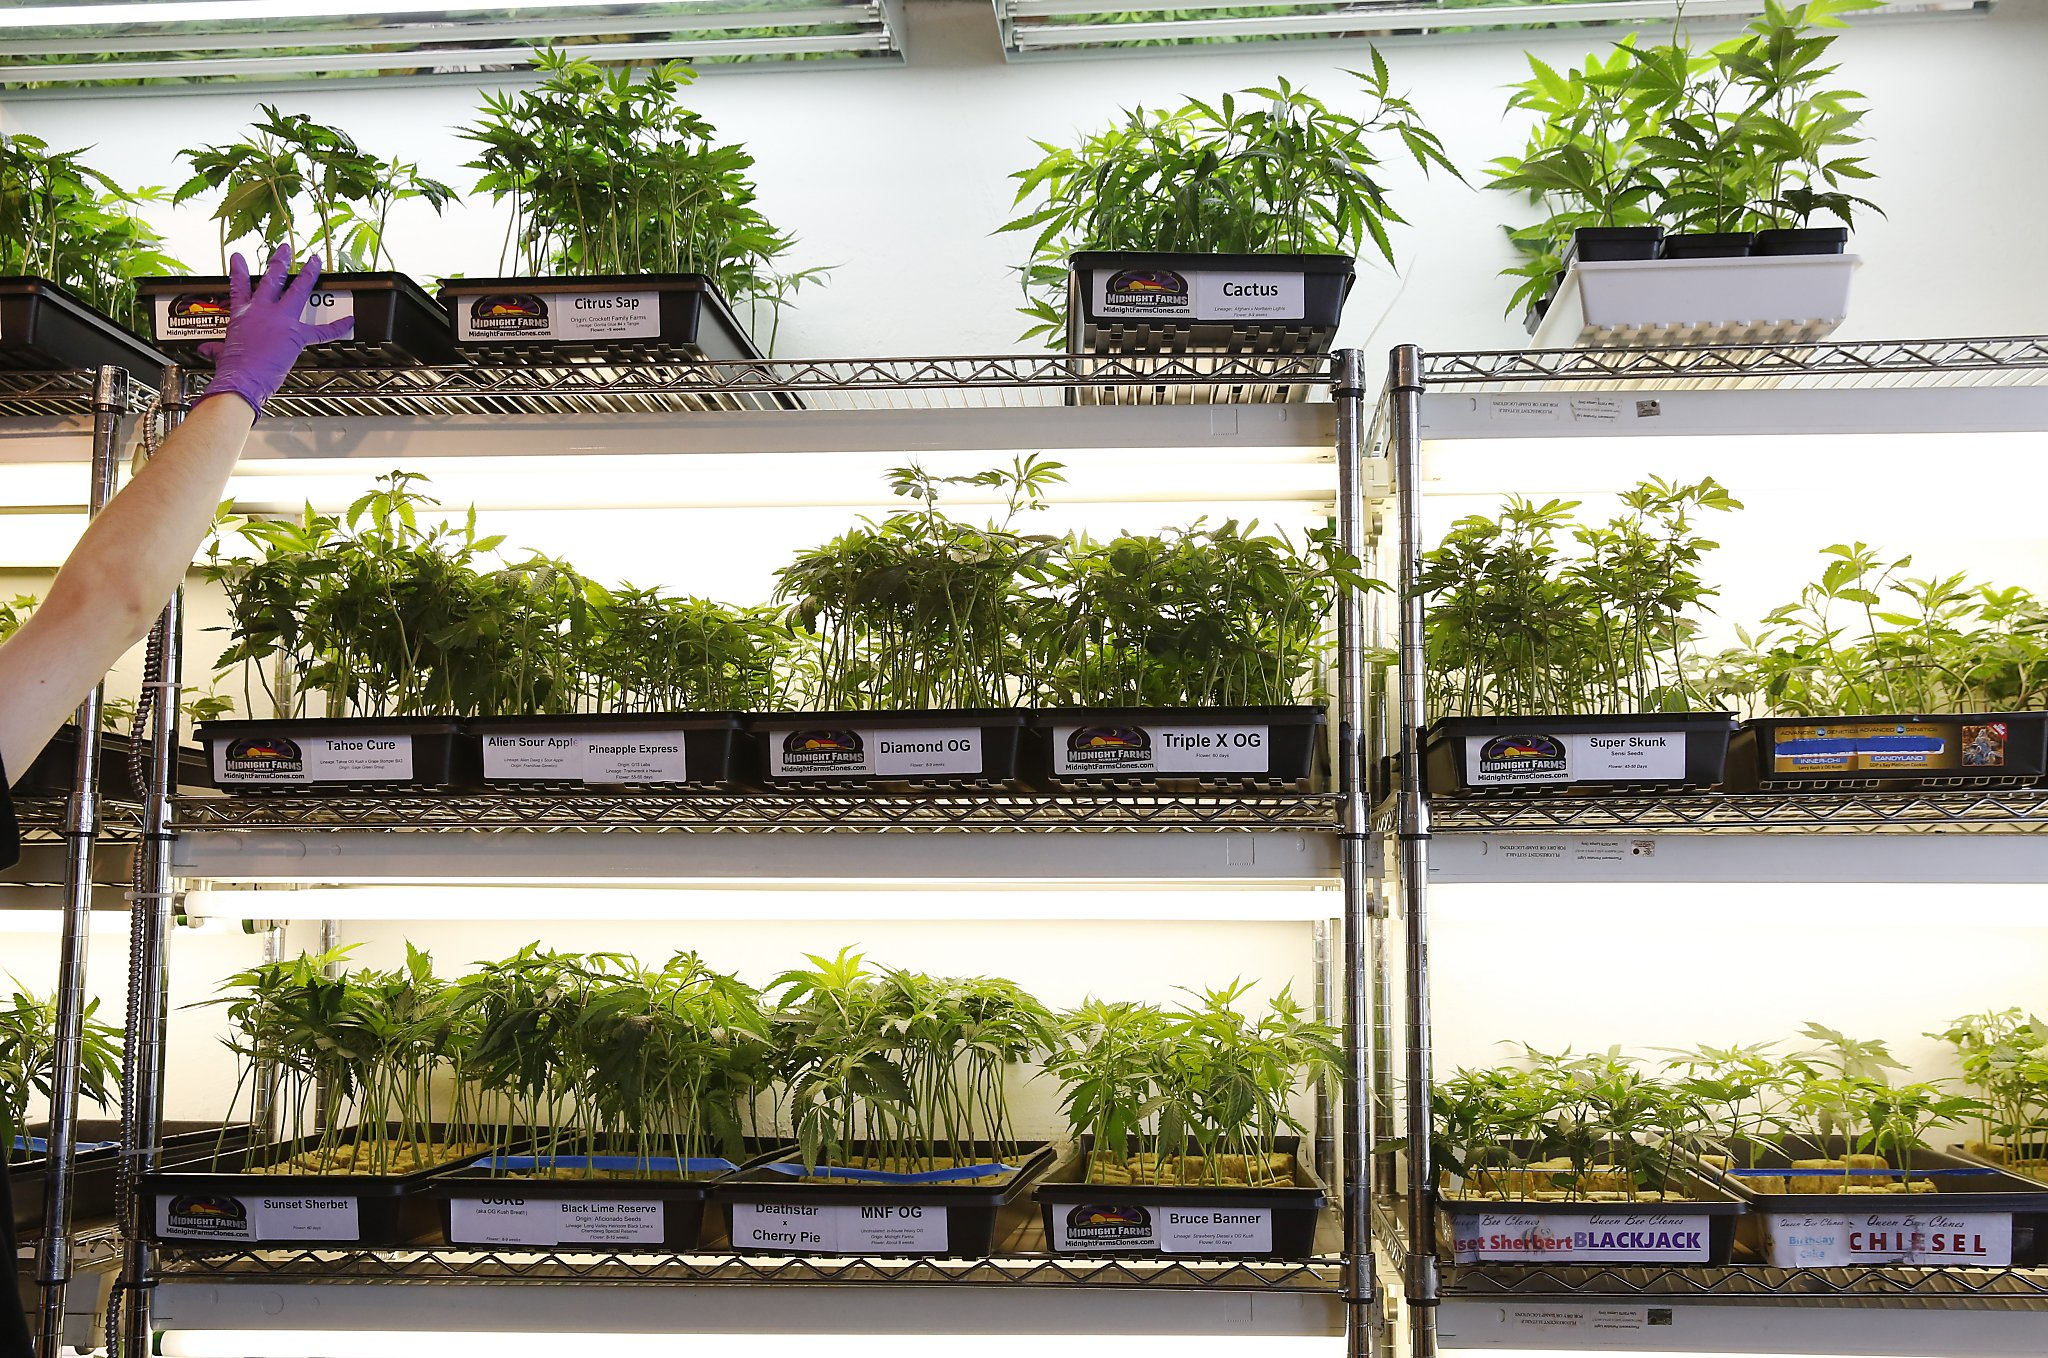 Oakland's revised pot laws add residency requirement - SFGate